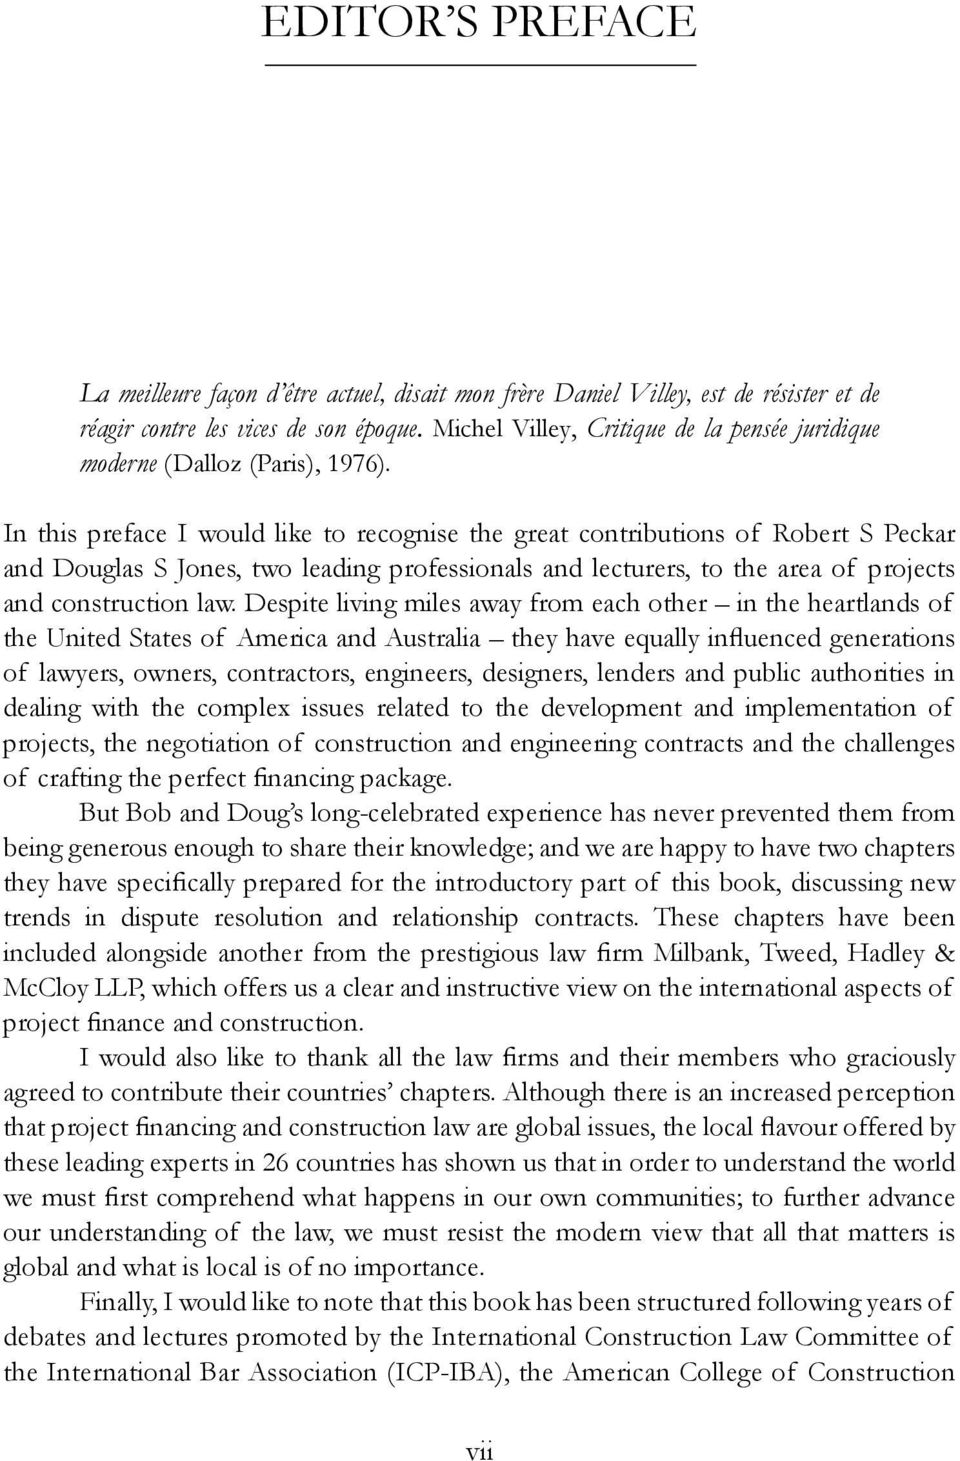 In this preface I would like to recognise the great contributions of Robert S Peckar and Douglas S Jones, two leading professionals and lecturers, to the area of projects and construction law.